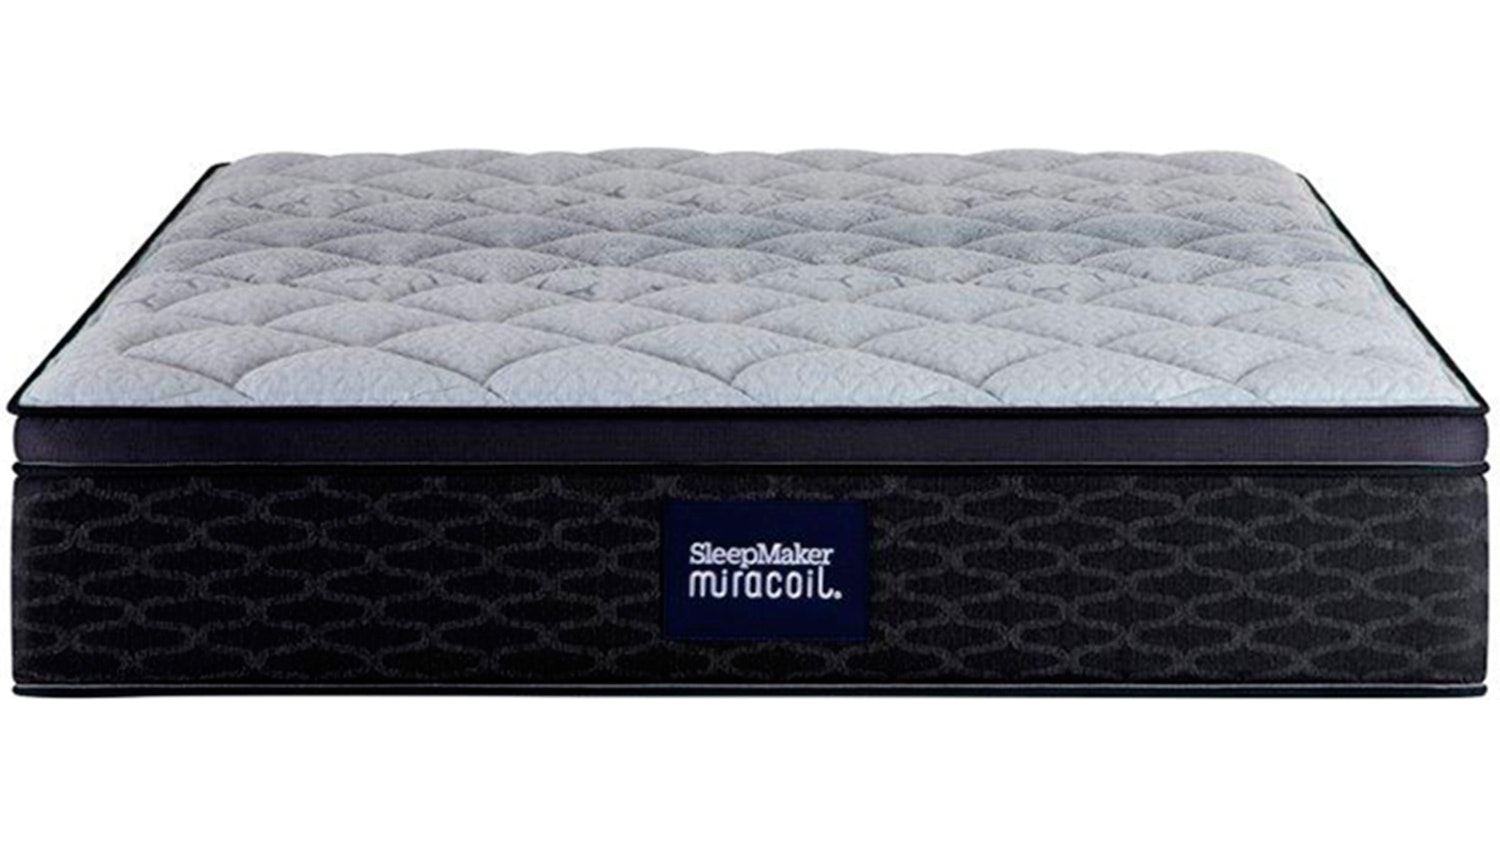 Sleepmaker Miracoil Armadale Firm Mattress